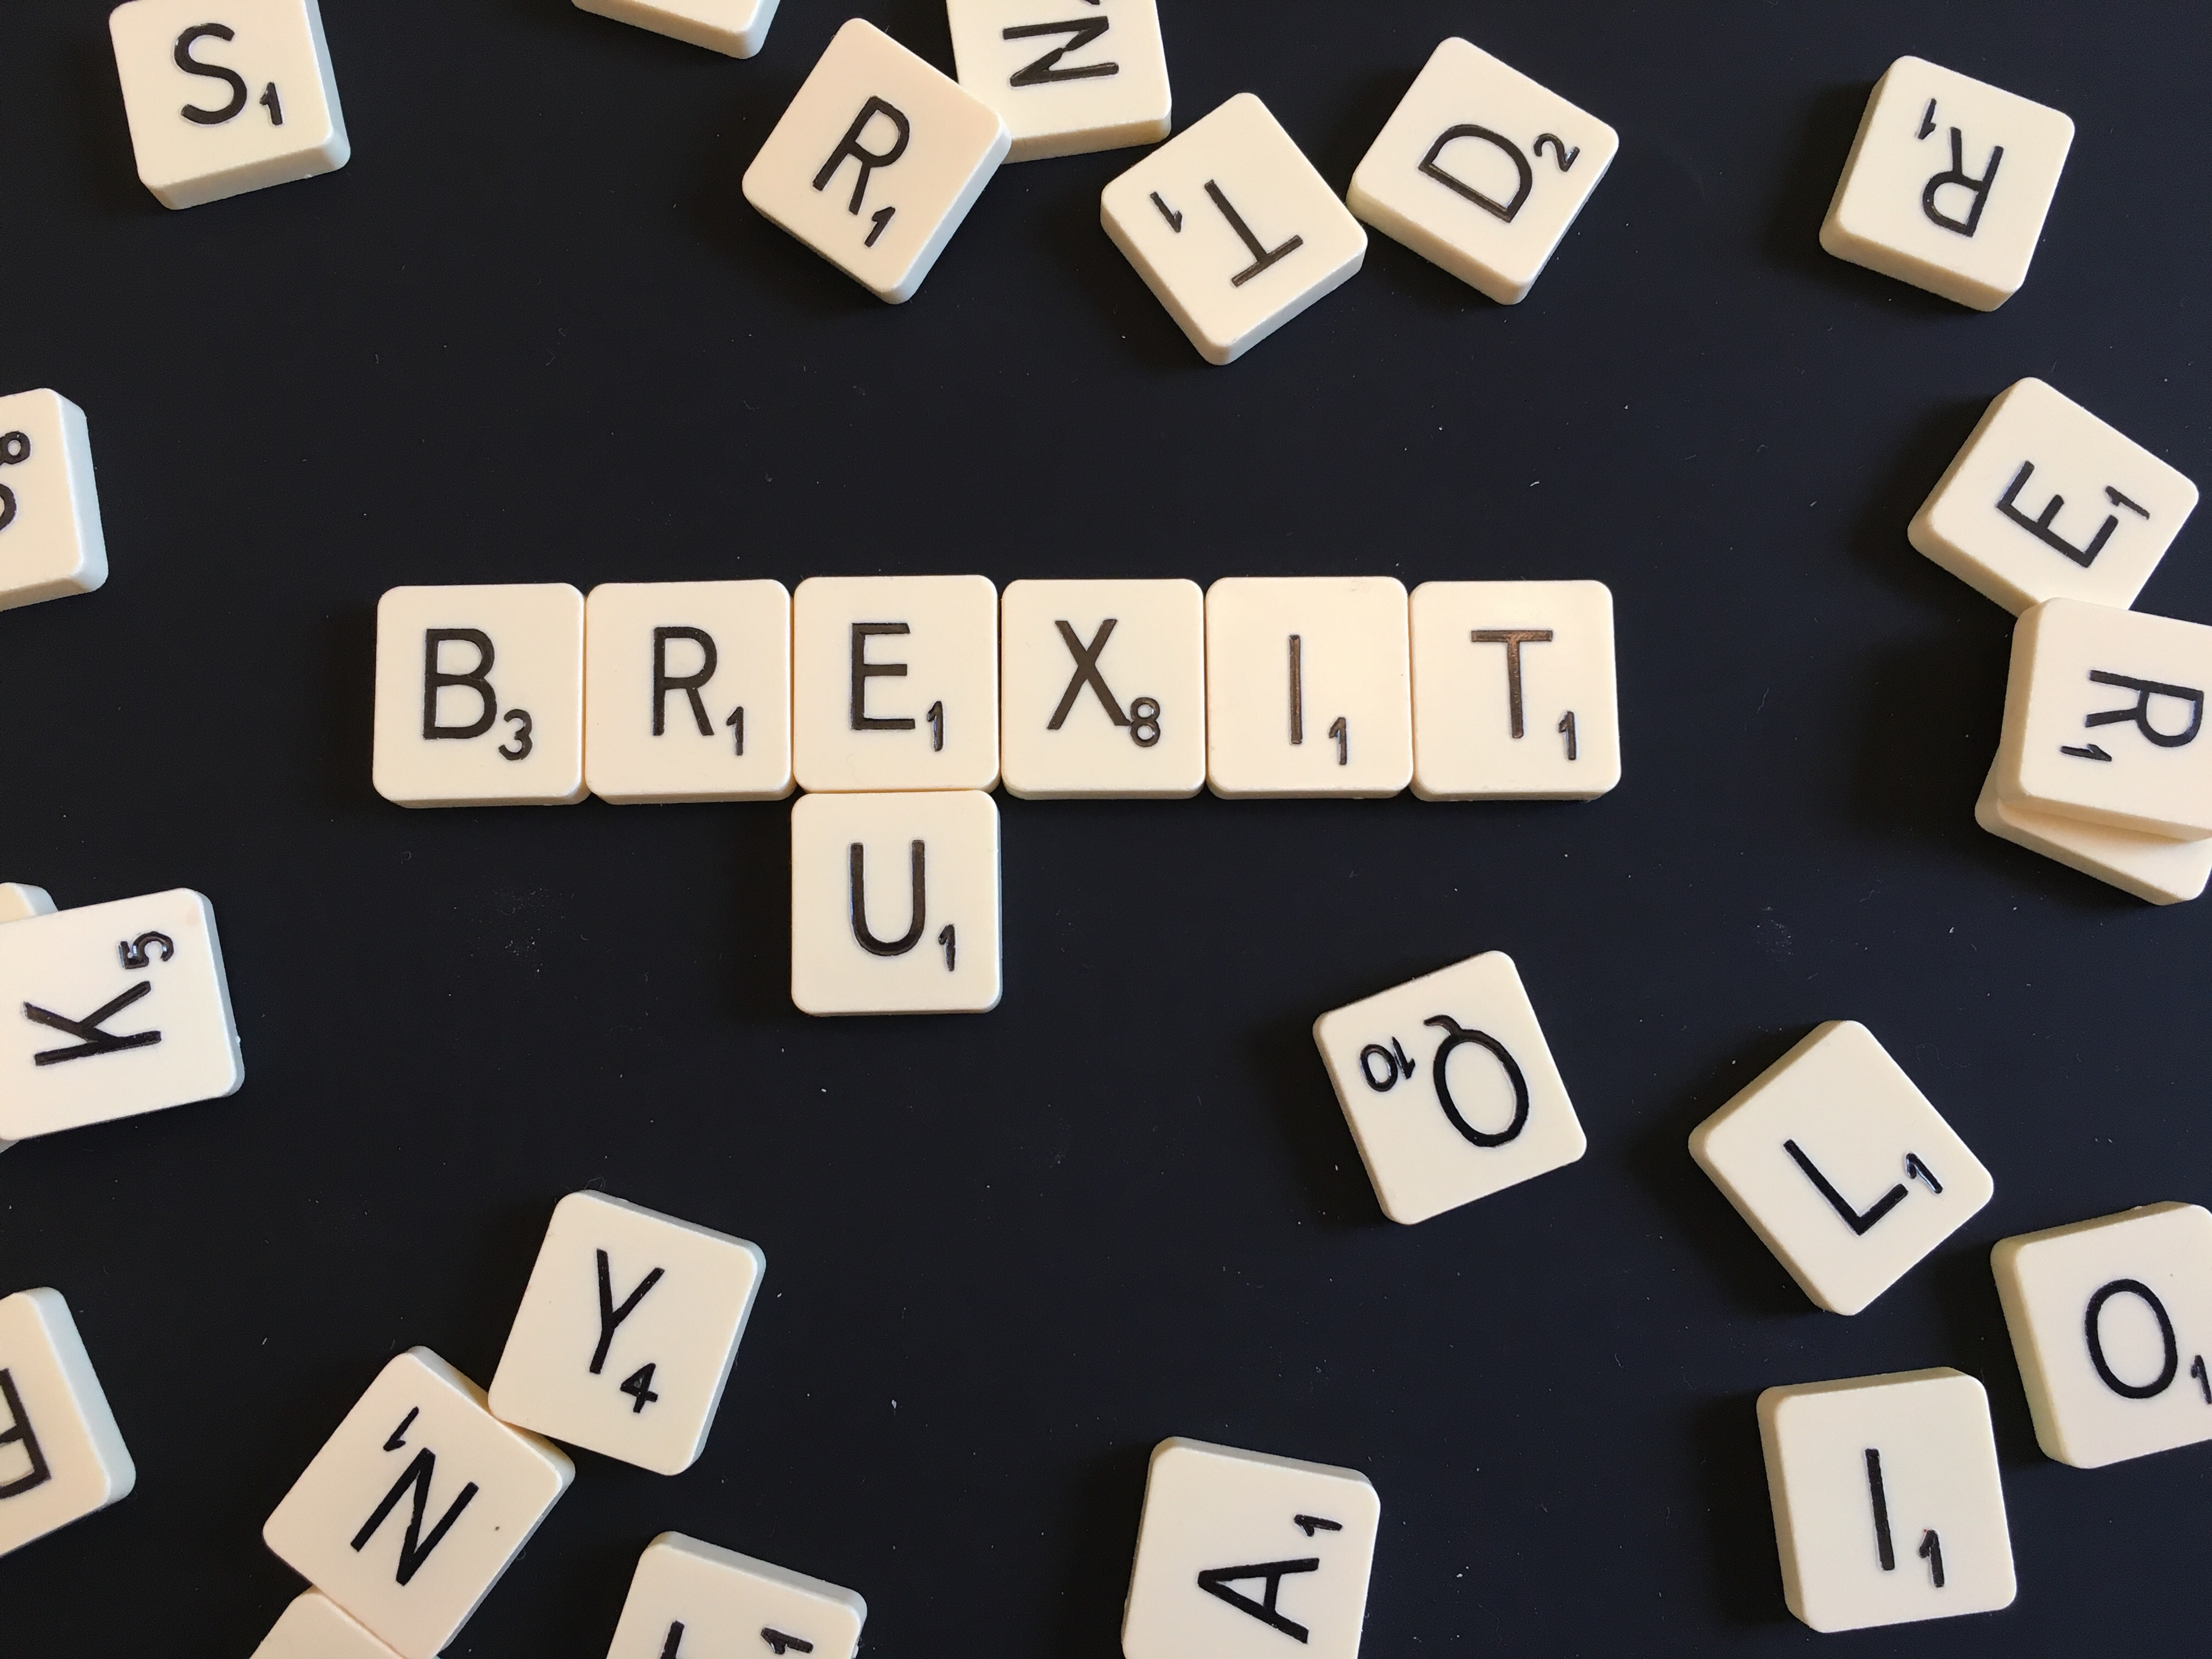 Brexit Referendum Is Non-Binding. UK Parliament Not Voters has Final Say?